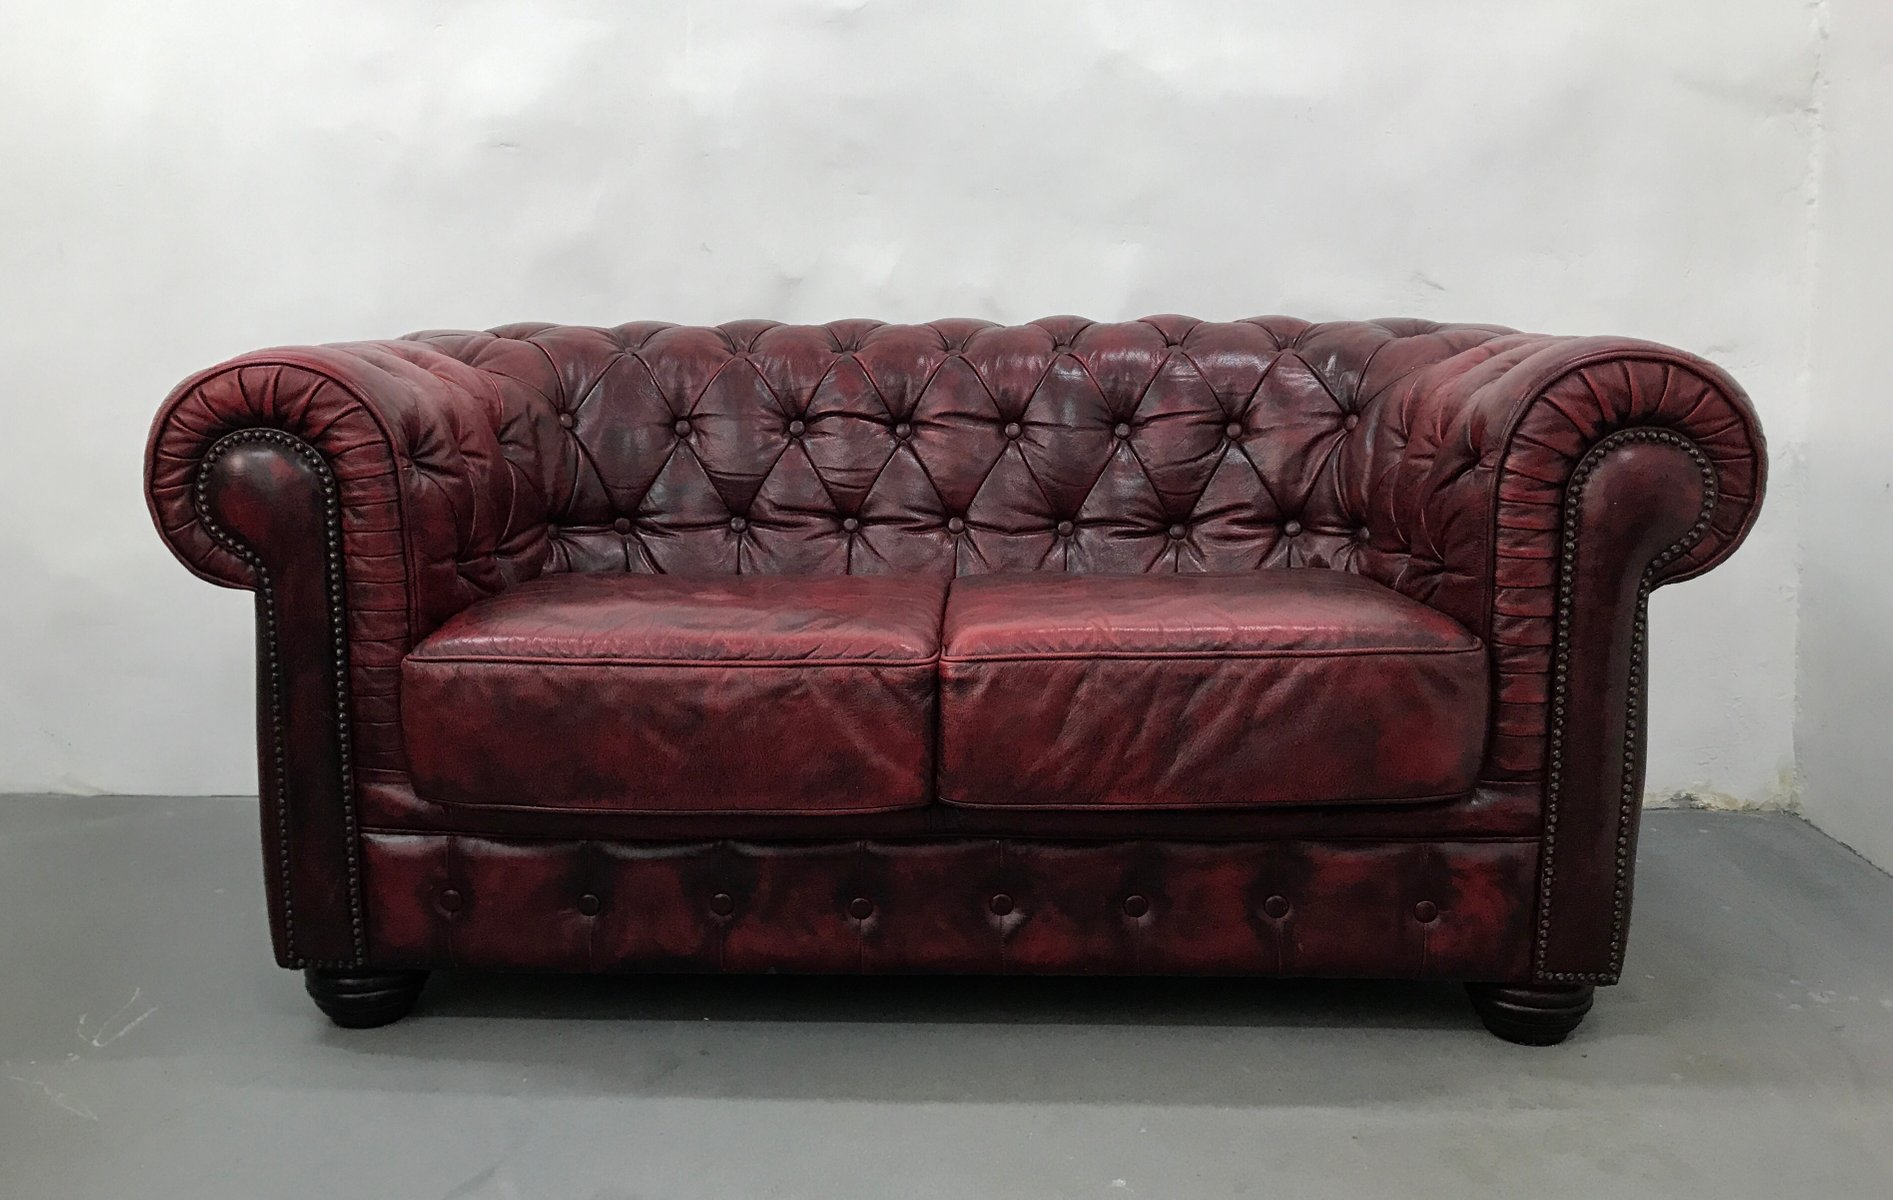 2 Seater Chesterfield Sofa Gumtree Red Chesterfield Sofa 2 Seater Baci Living Room